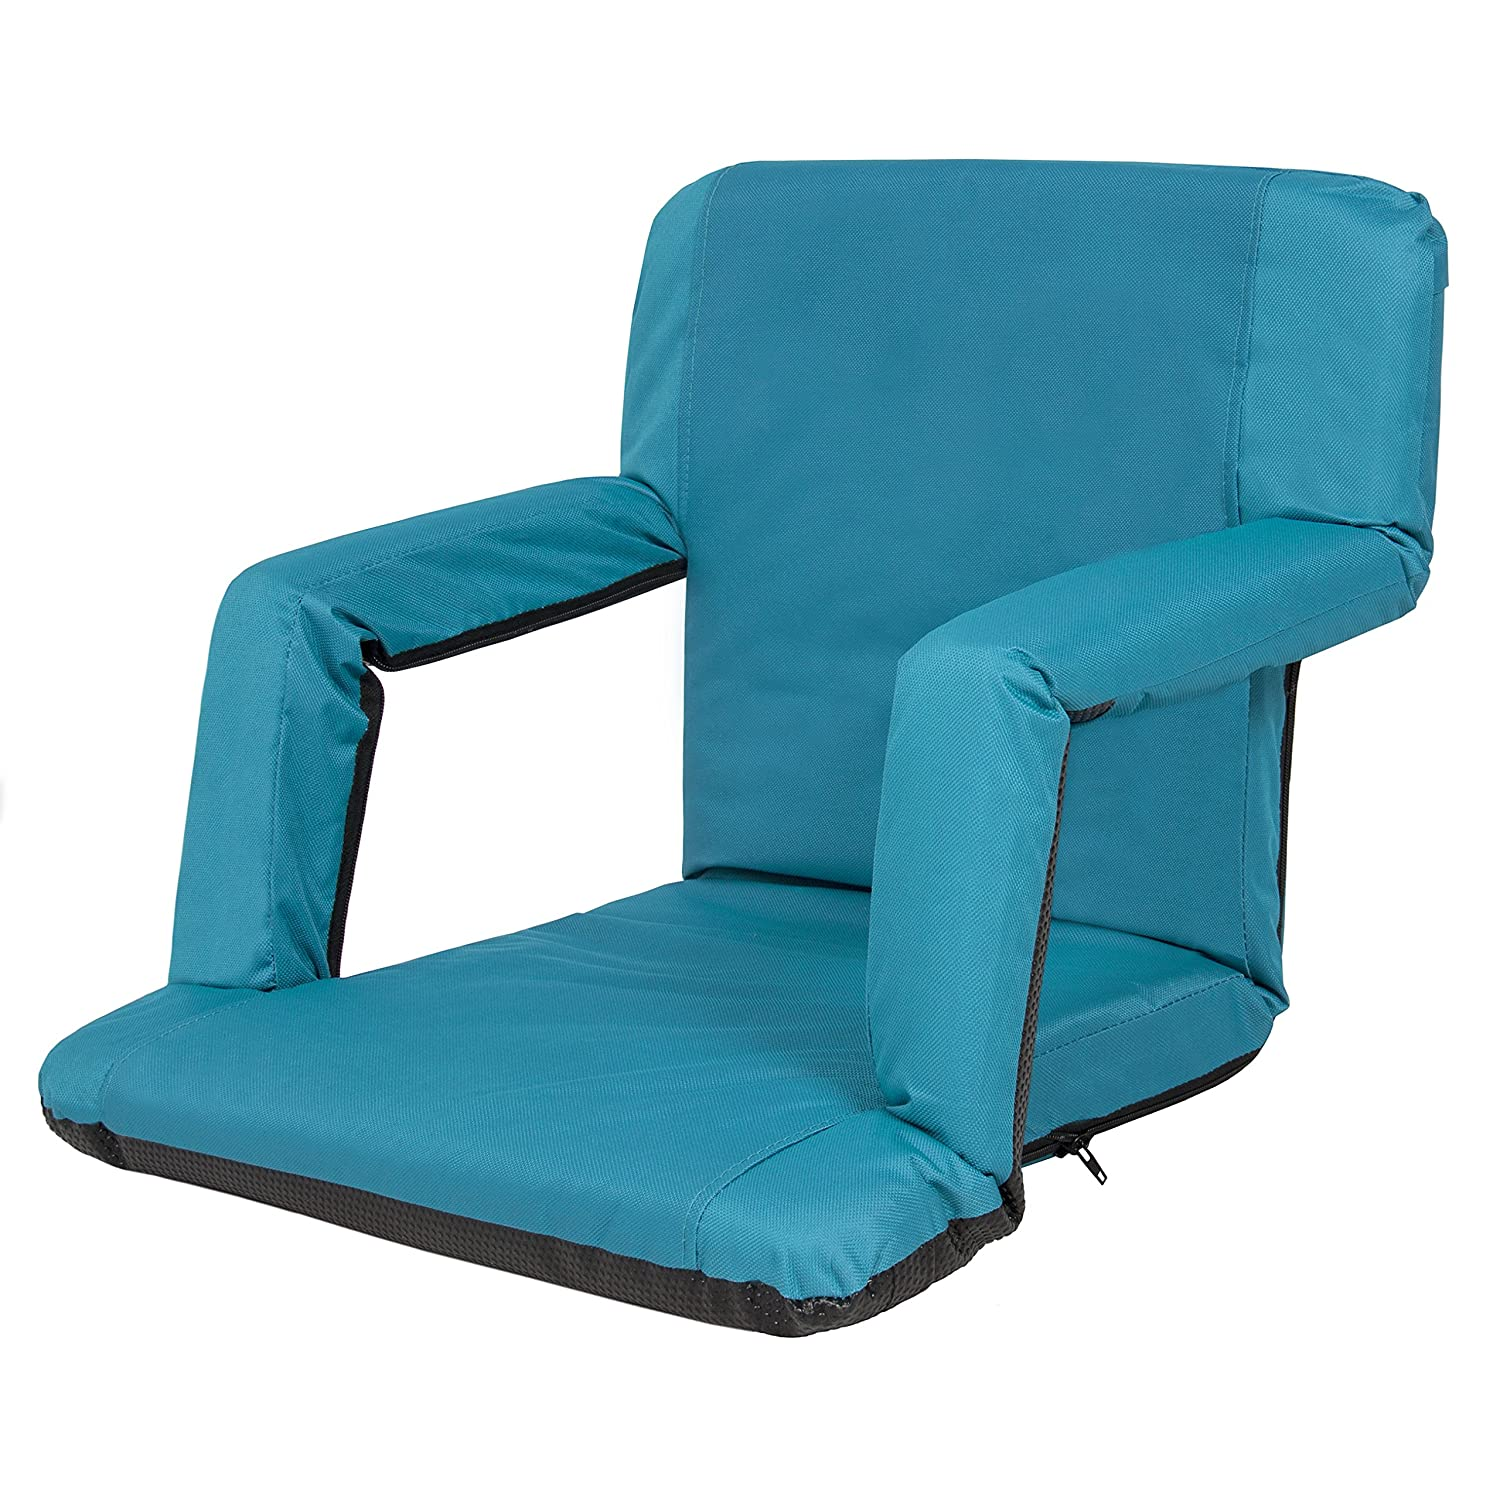 Amazon.com : Best Choice Products Portable Reclining Seat Polyester Padded  Cushion Caming Outdoor Beach Chair Blue : Garden U0026 Outdoor